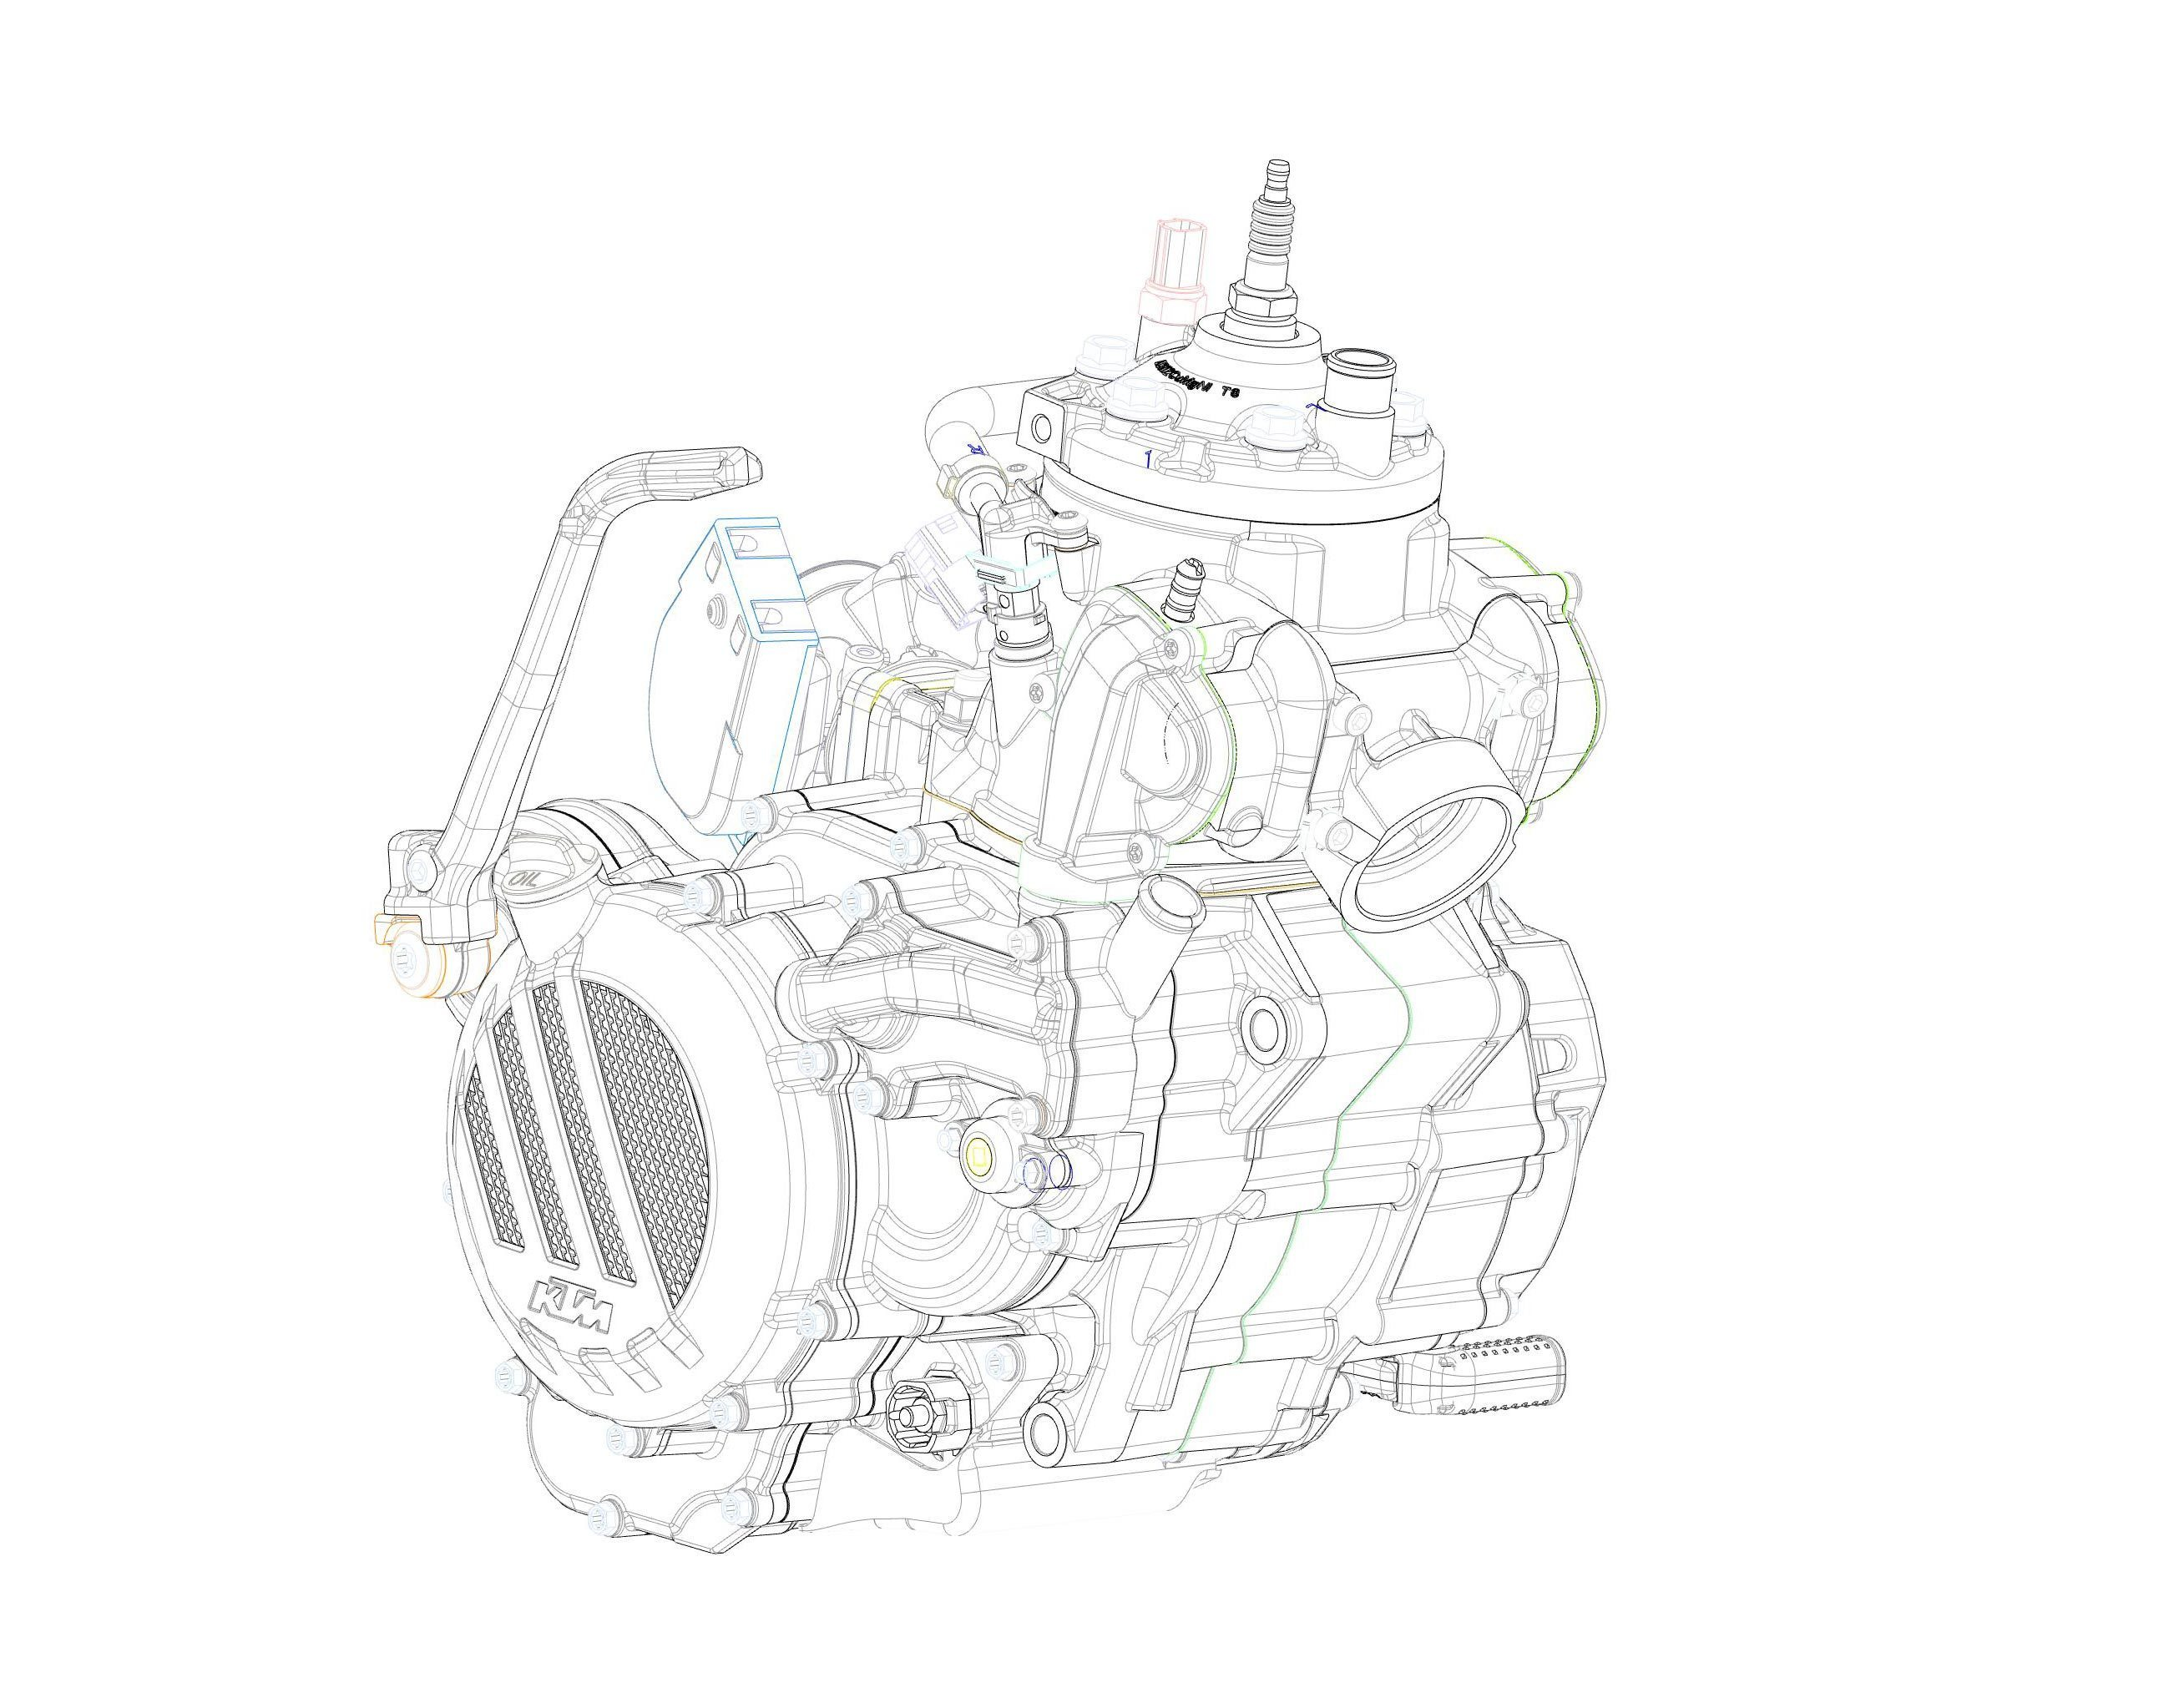 20170317_KTM-EXC-2018_engine-two-stroke-fuel-injection.jpg